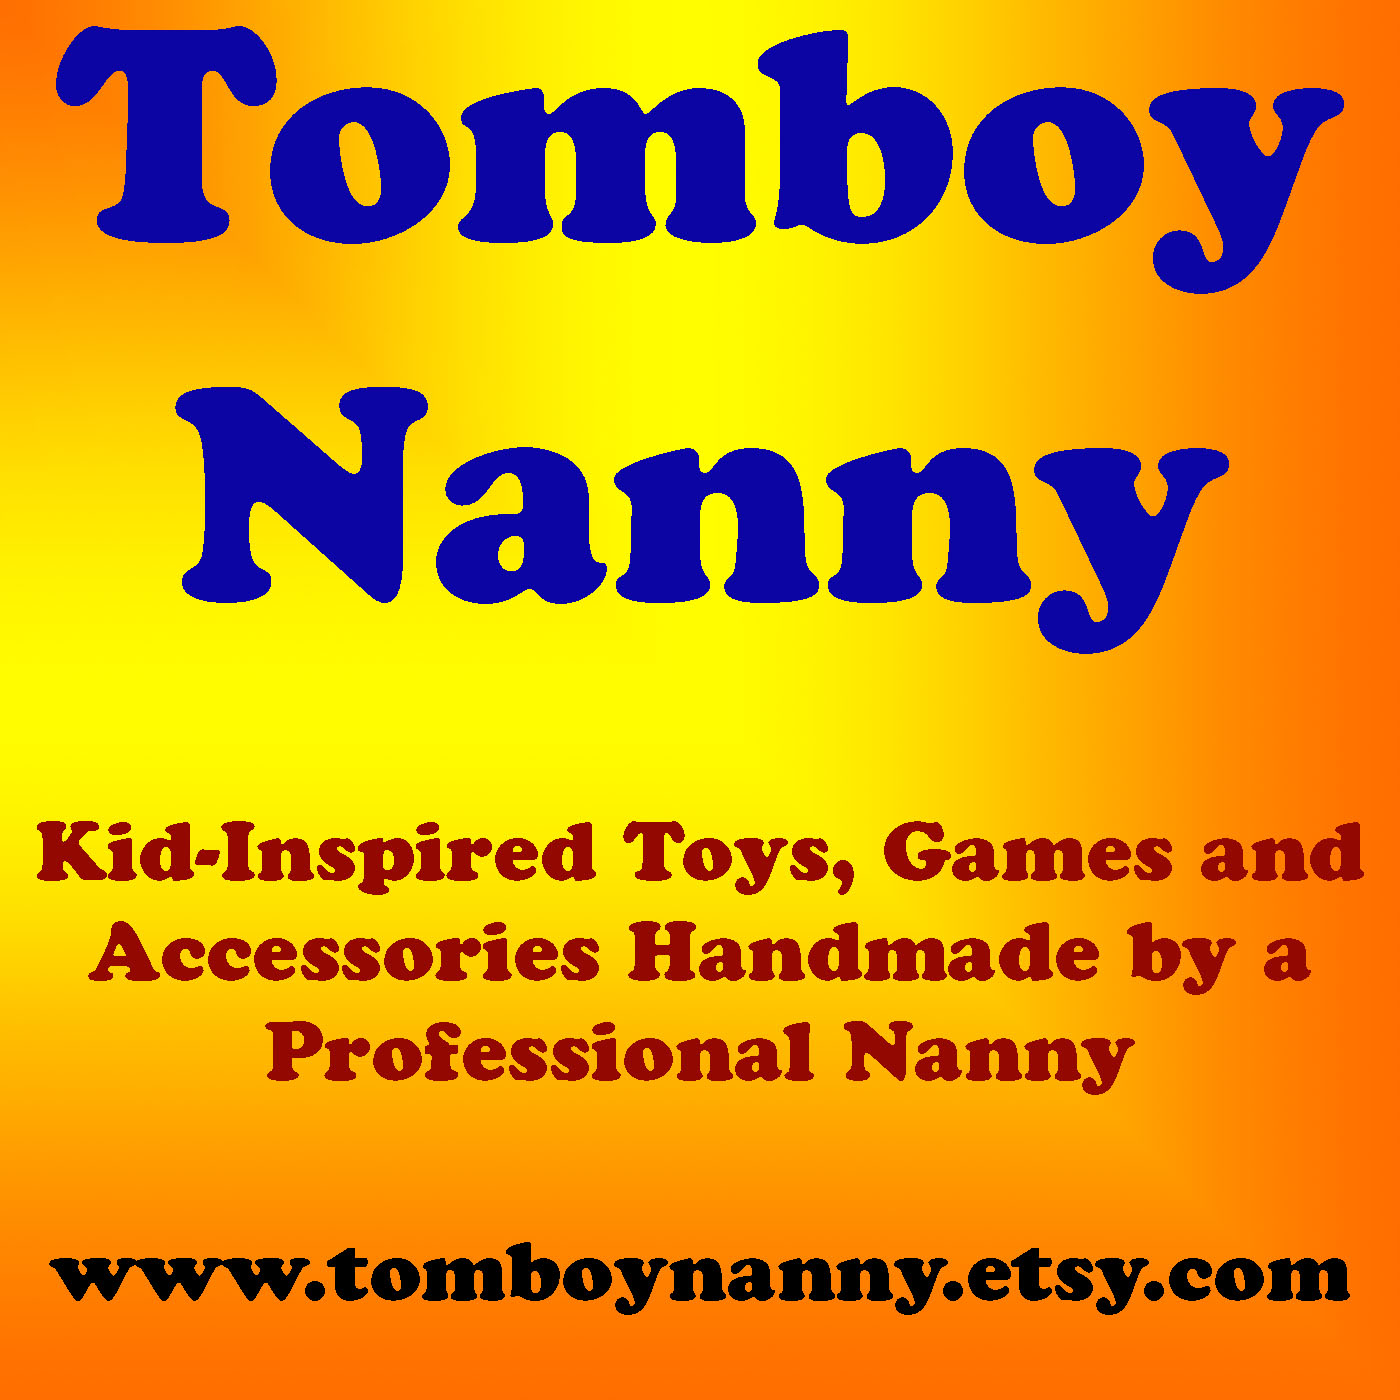 Tomboy Nanny will be at Angel City Brewery's Beer Bazaar on Sunday August 27th!